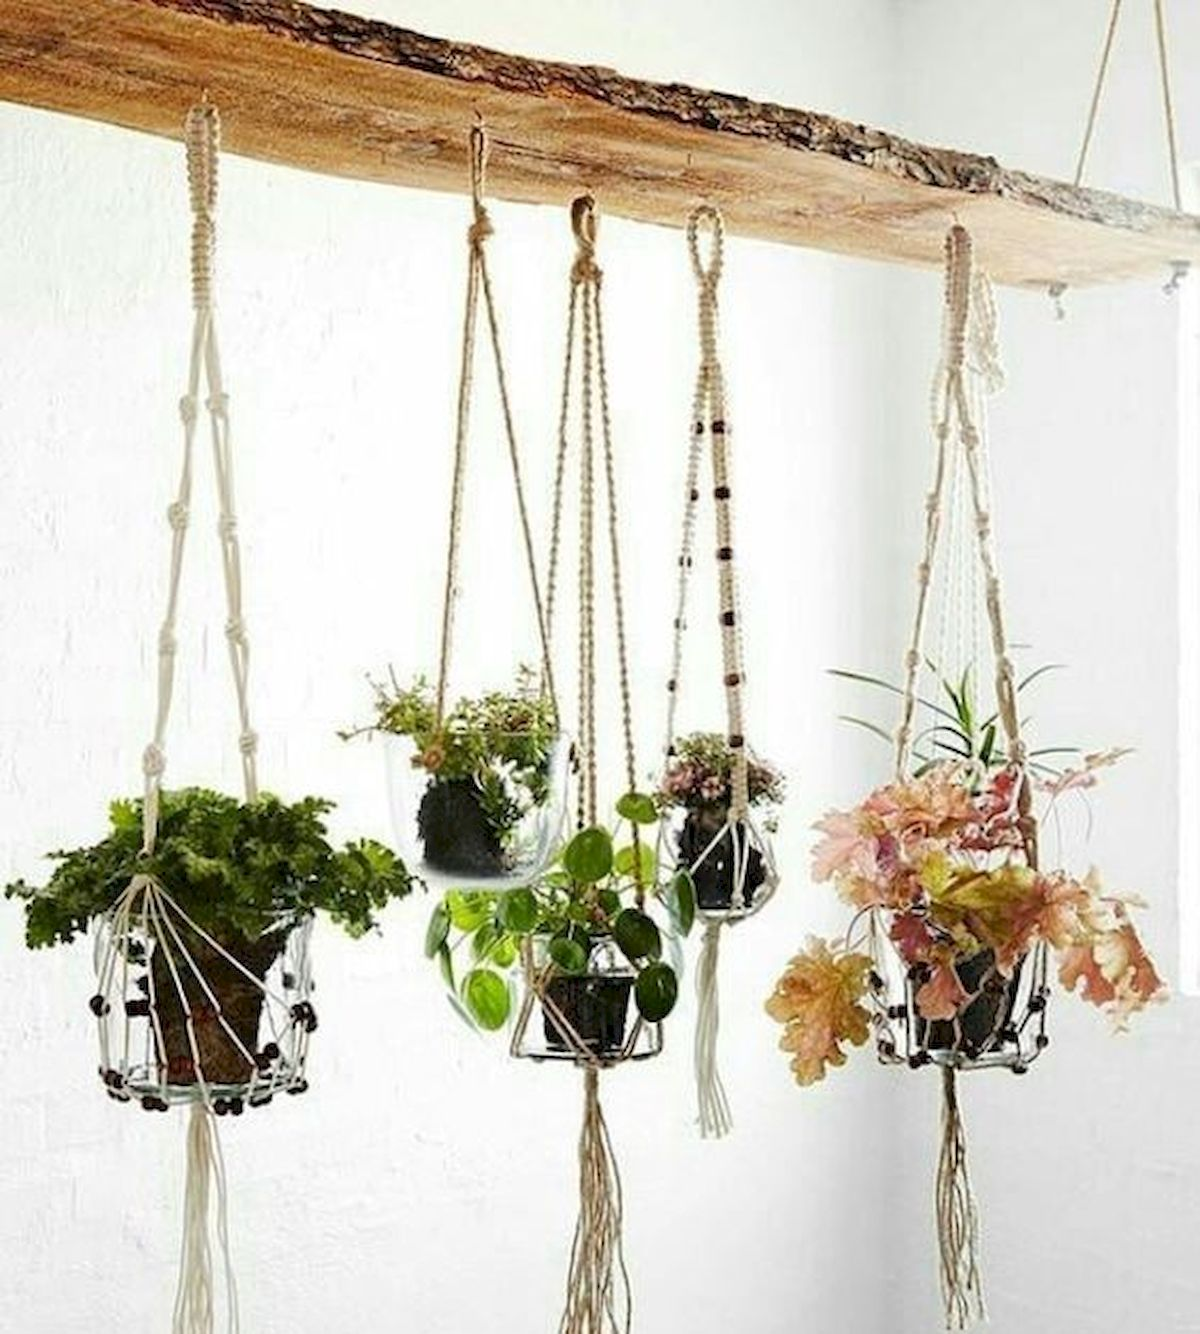 30 Adorable Indoor Hanging Plants To Decorate Your Home (3)